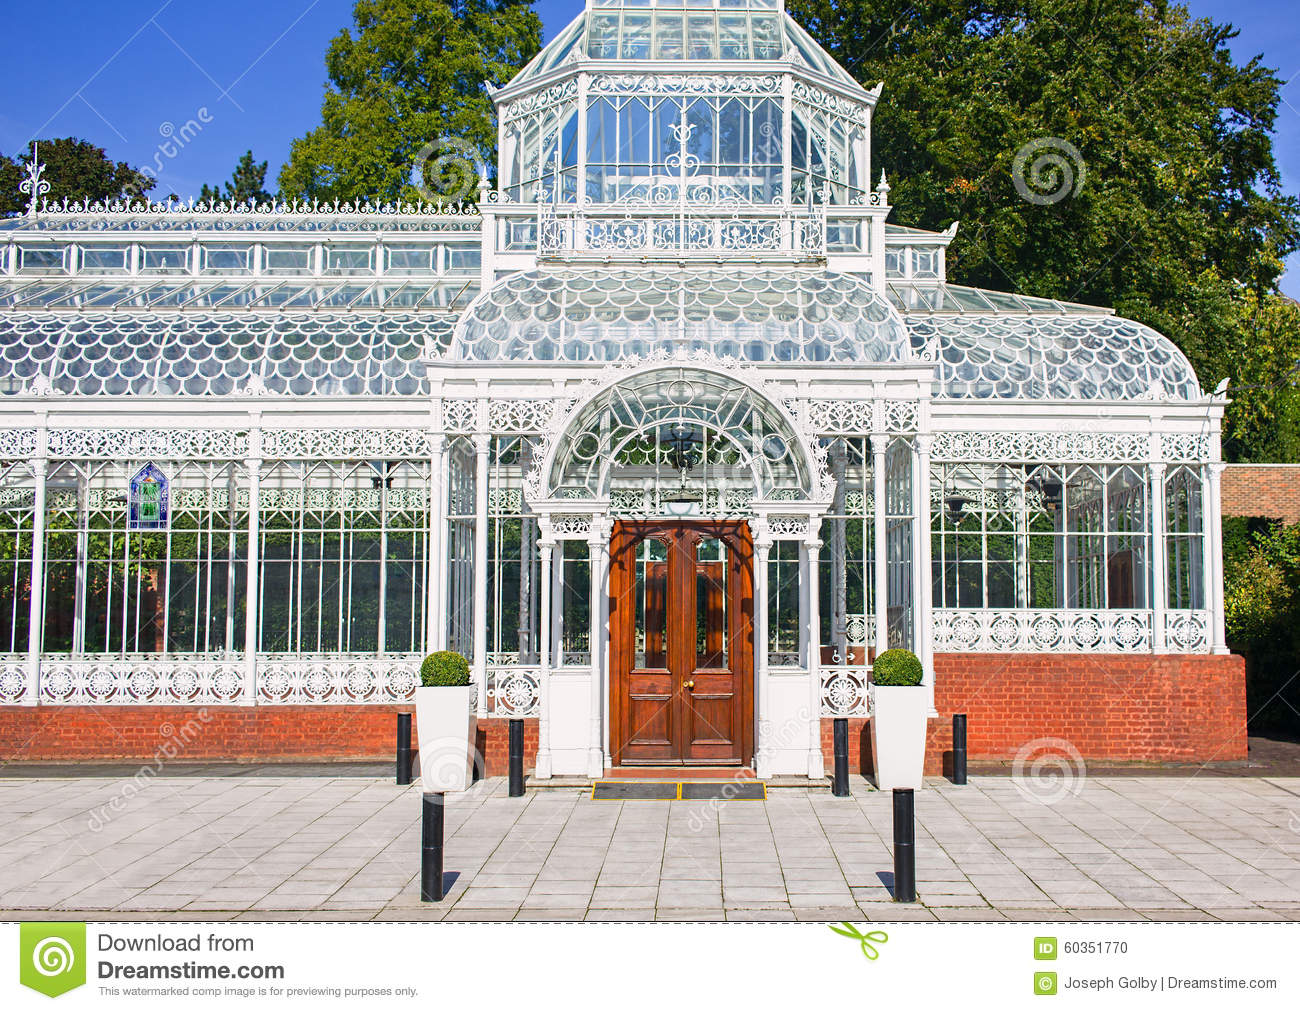 Ironwork Victorian Style And Flower Pot On Steps Royalty Free Stock Image Cartoondealer Com